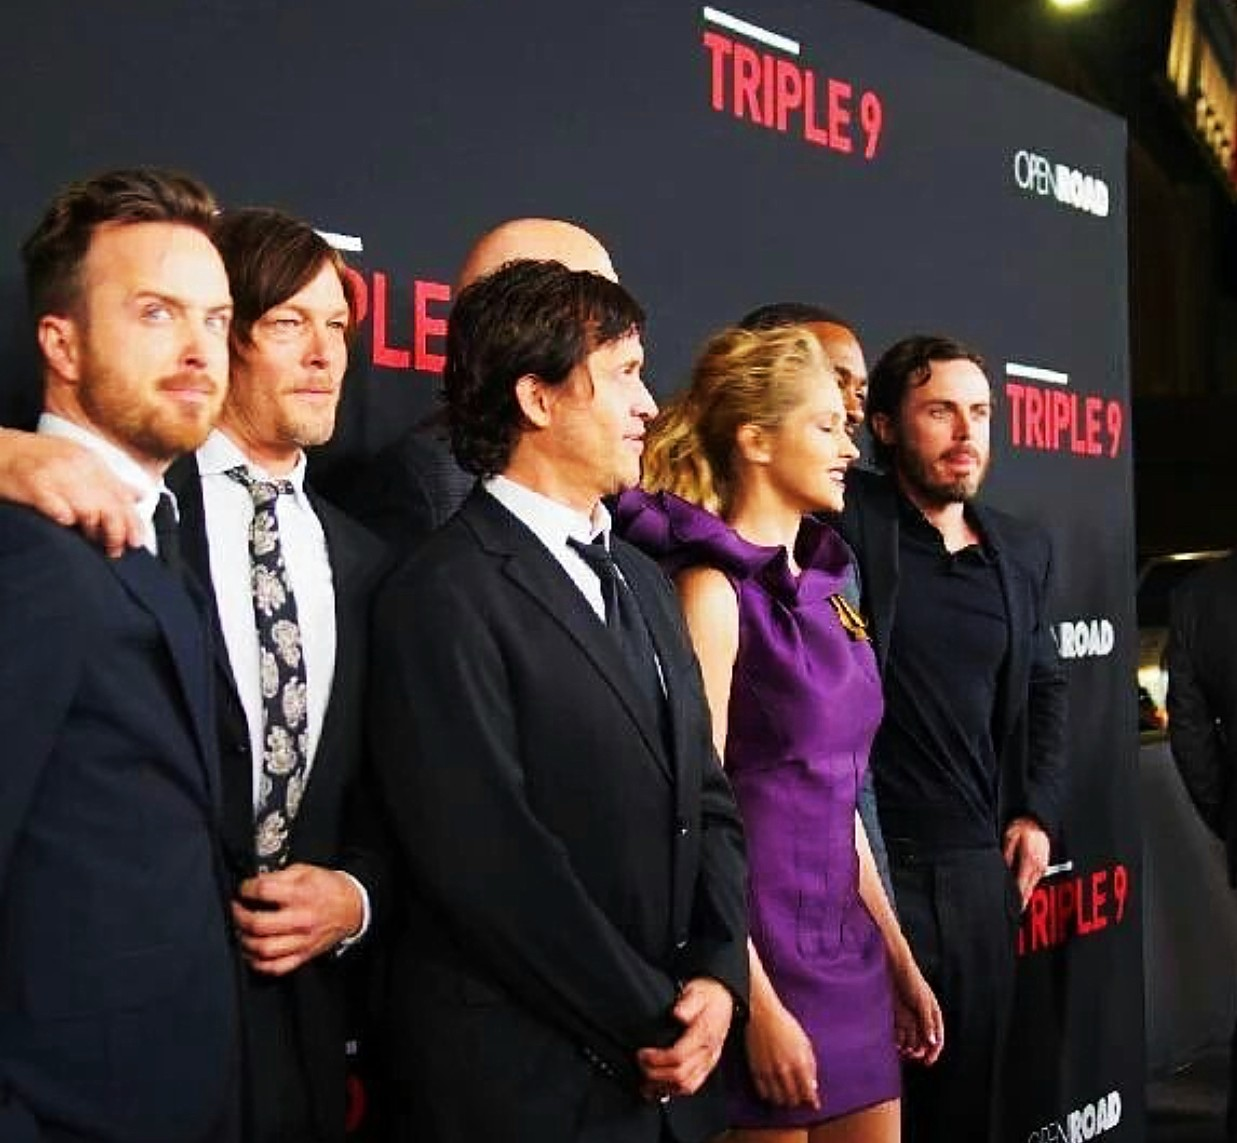 Triple 9, movie premiere, Aaron Paul, Casey Affleck, Norman Reedus